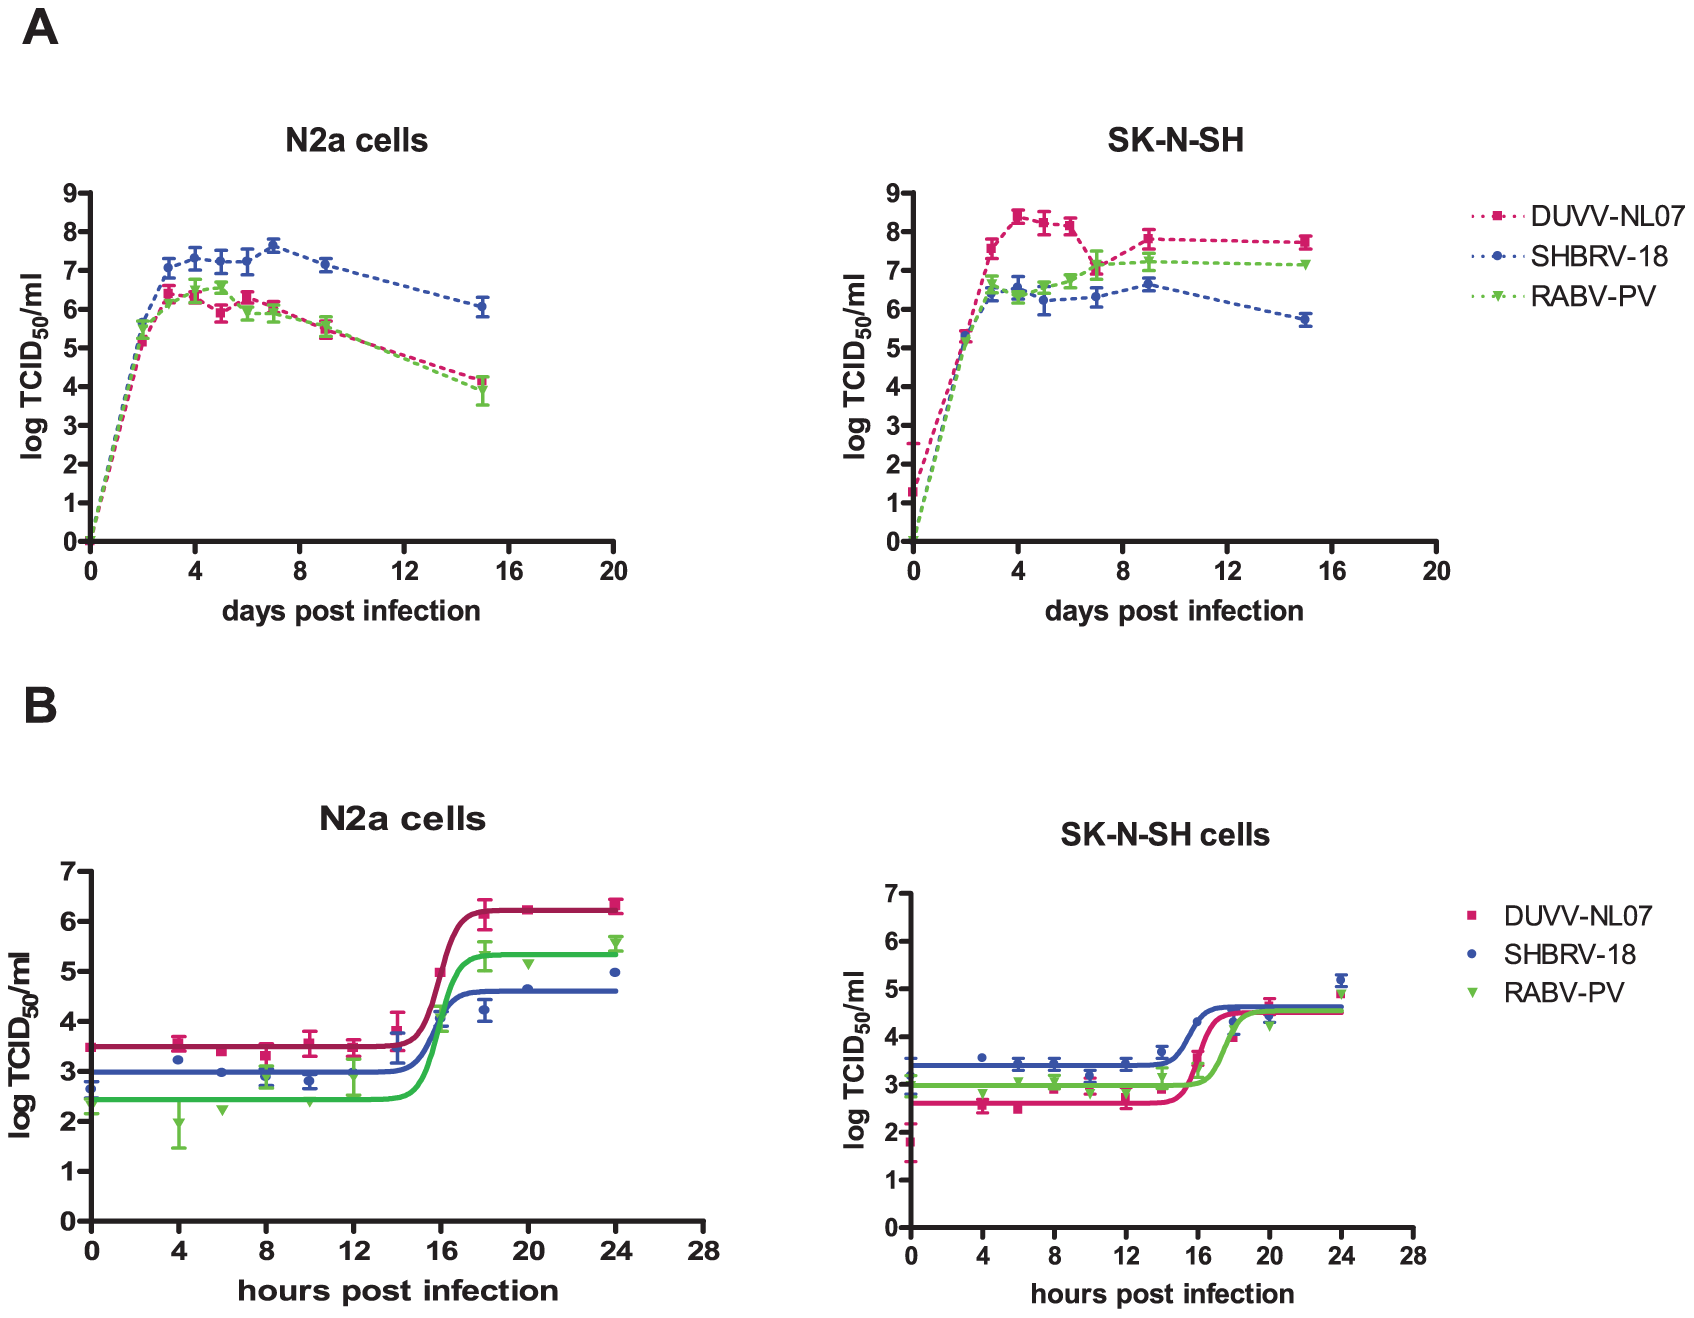 Replication characteristics of DUVV-NL07 in mouse or human neuroblastoma cells.